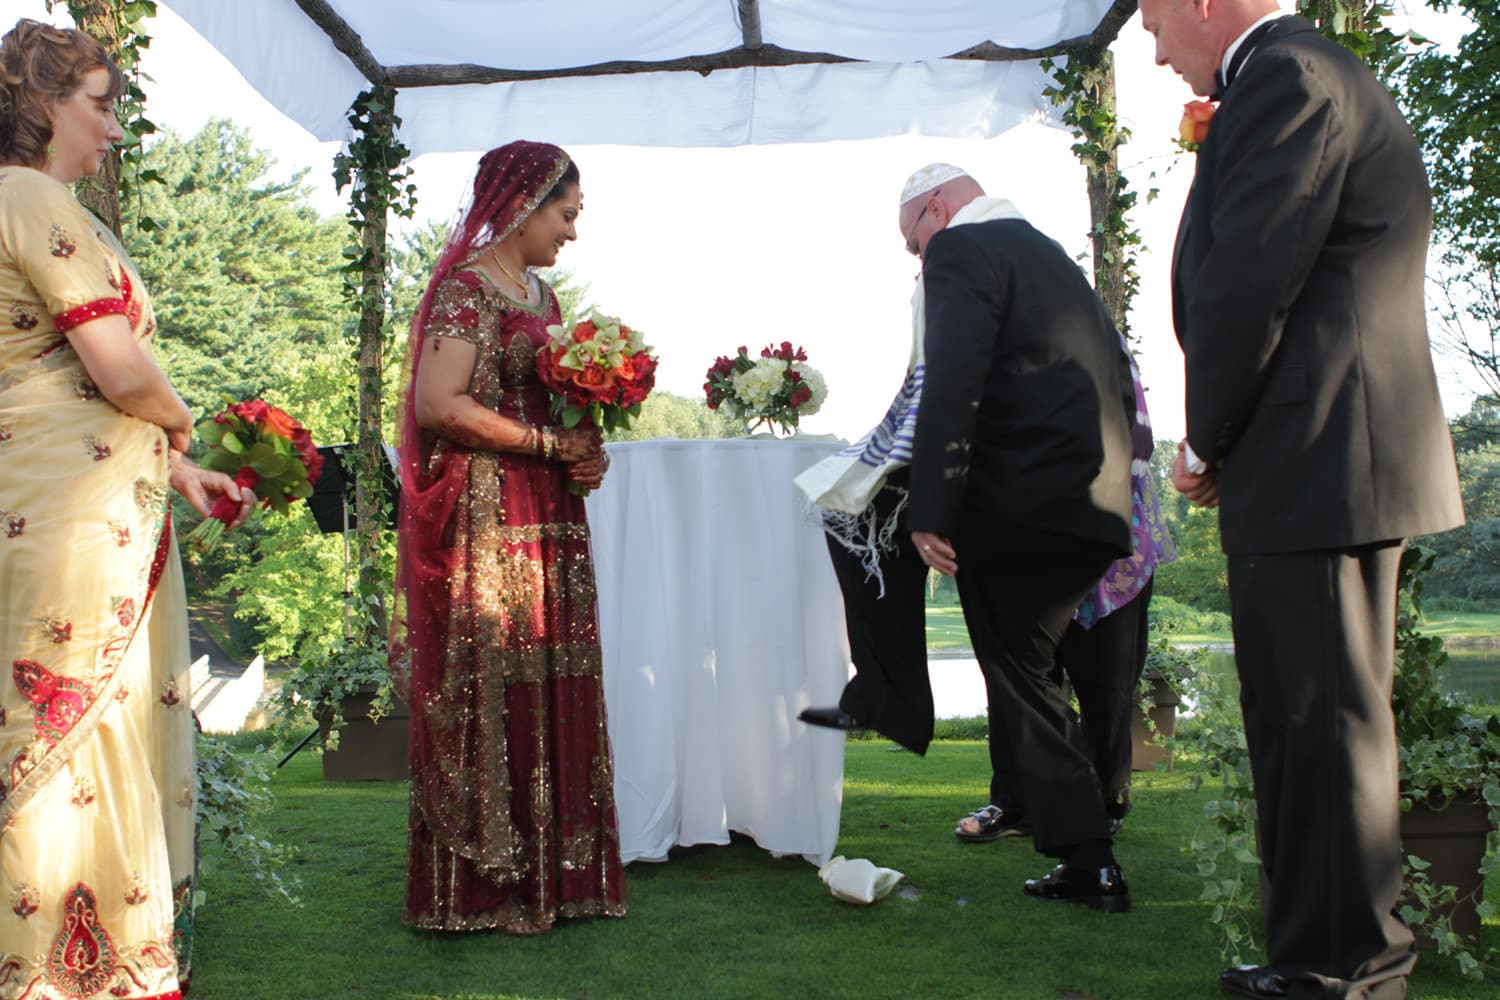 John Kravitz breaks the glass at the wedding ceremony. His bride is dressed in South Asian bridal attire. — Photo courtesy Amara Chaudhry Kravitz